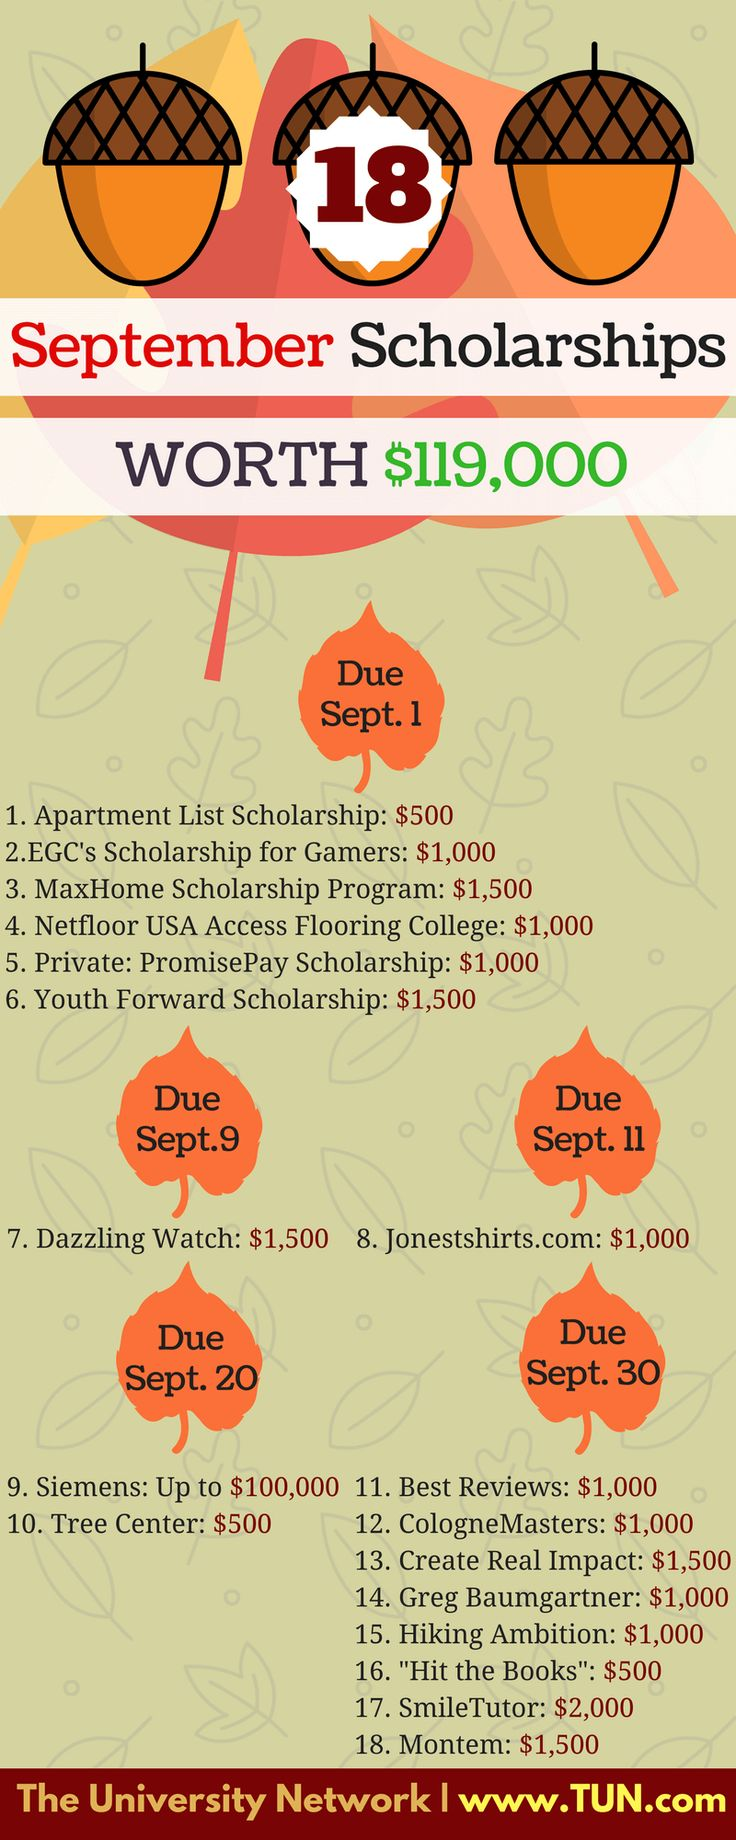 Make sure you're set for the upcoming semester by applying to these scholarships. #9 could really help a STEM student! Here are 18 scholarships with September deadlines – apply away before the month flies by! 1. Apartment List Scholarship – $500 – Apply biannually by September 1 & March 1 This scholarship is awarded to a student who shares the same core values as those who work at Apartmentlist.com 2. EGC's Scholarship for Gamers – $1,000 – Apply biannually by September 1 & TB...